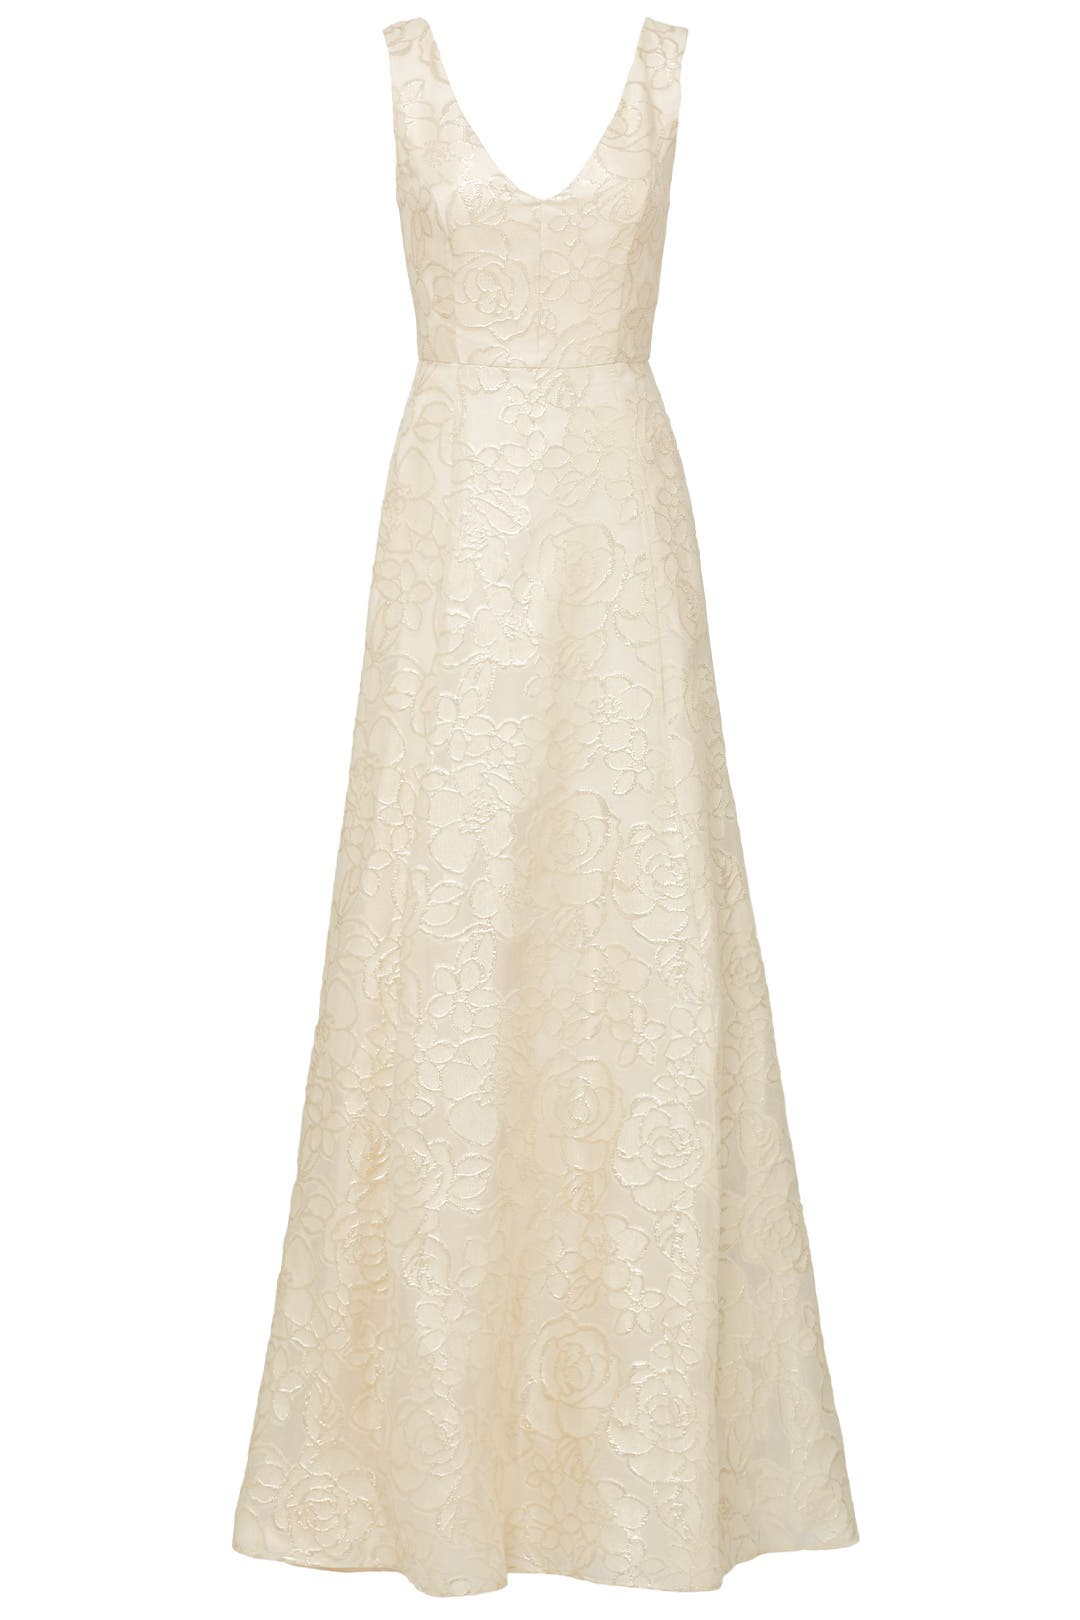 Gwendolyn gown by erin erin fetherston for 77 rent the runway ombrellifo Image collections